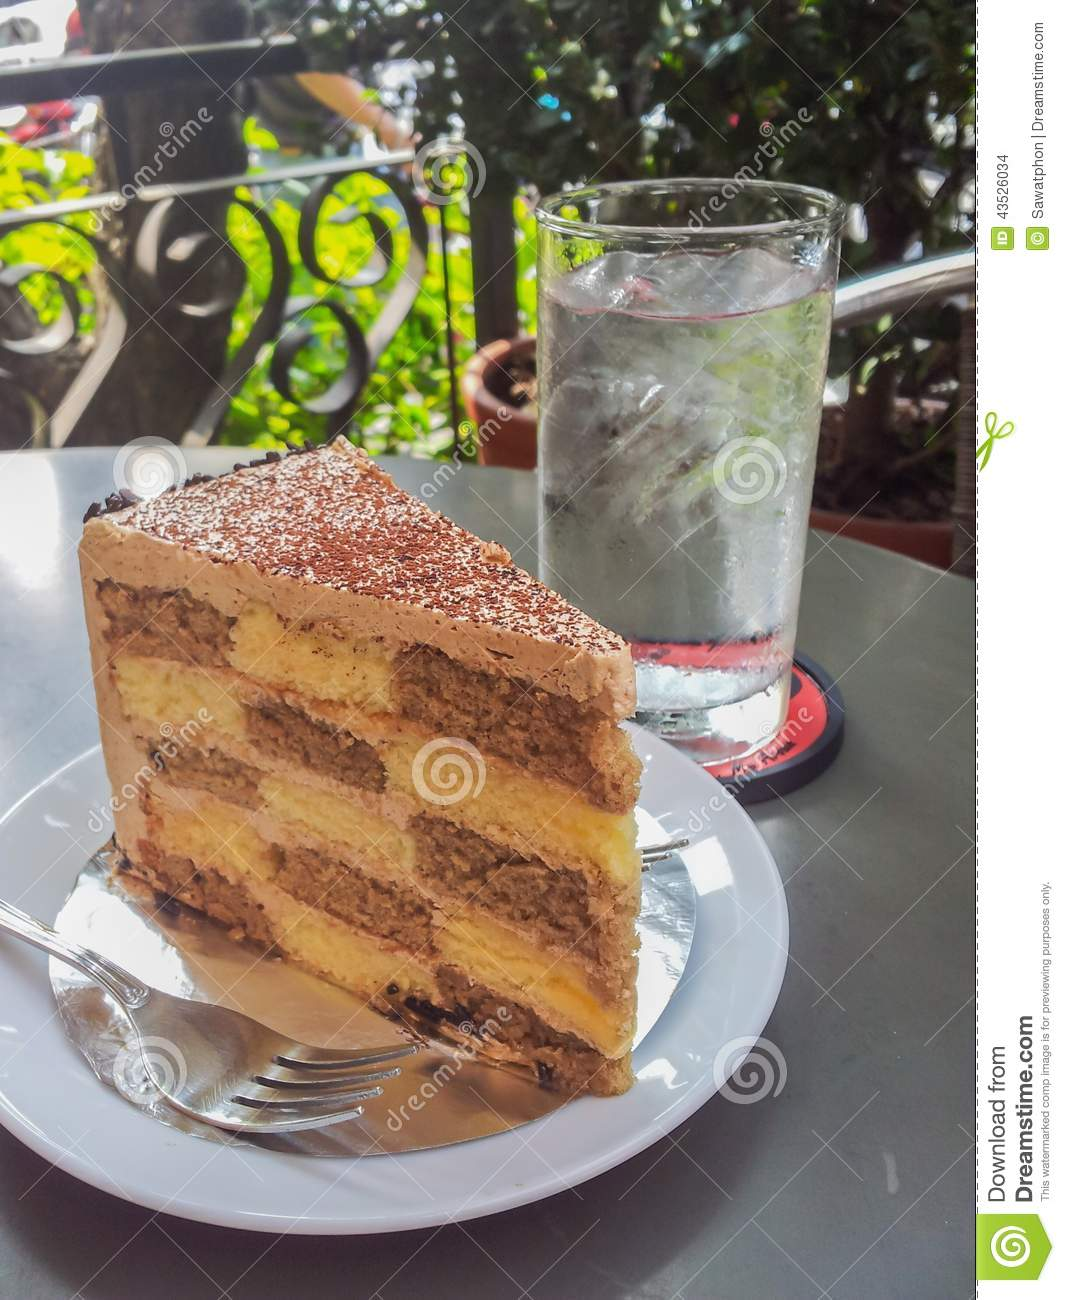 business plan peace of cake Morningstar bakery specialty baker business plan executive summary  morningstar bakery is specializing in wheat-free and gluten-free breads, pastries,  and.